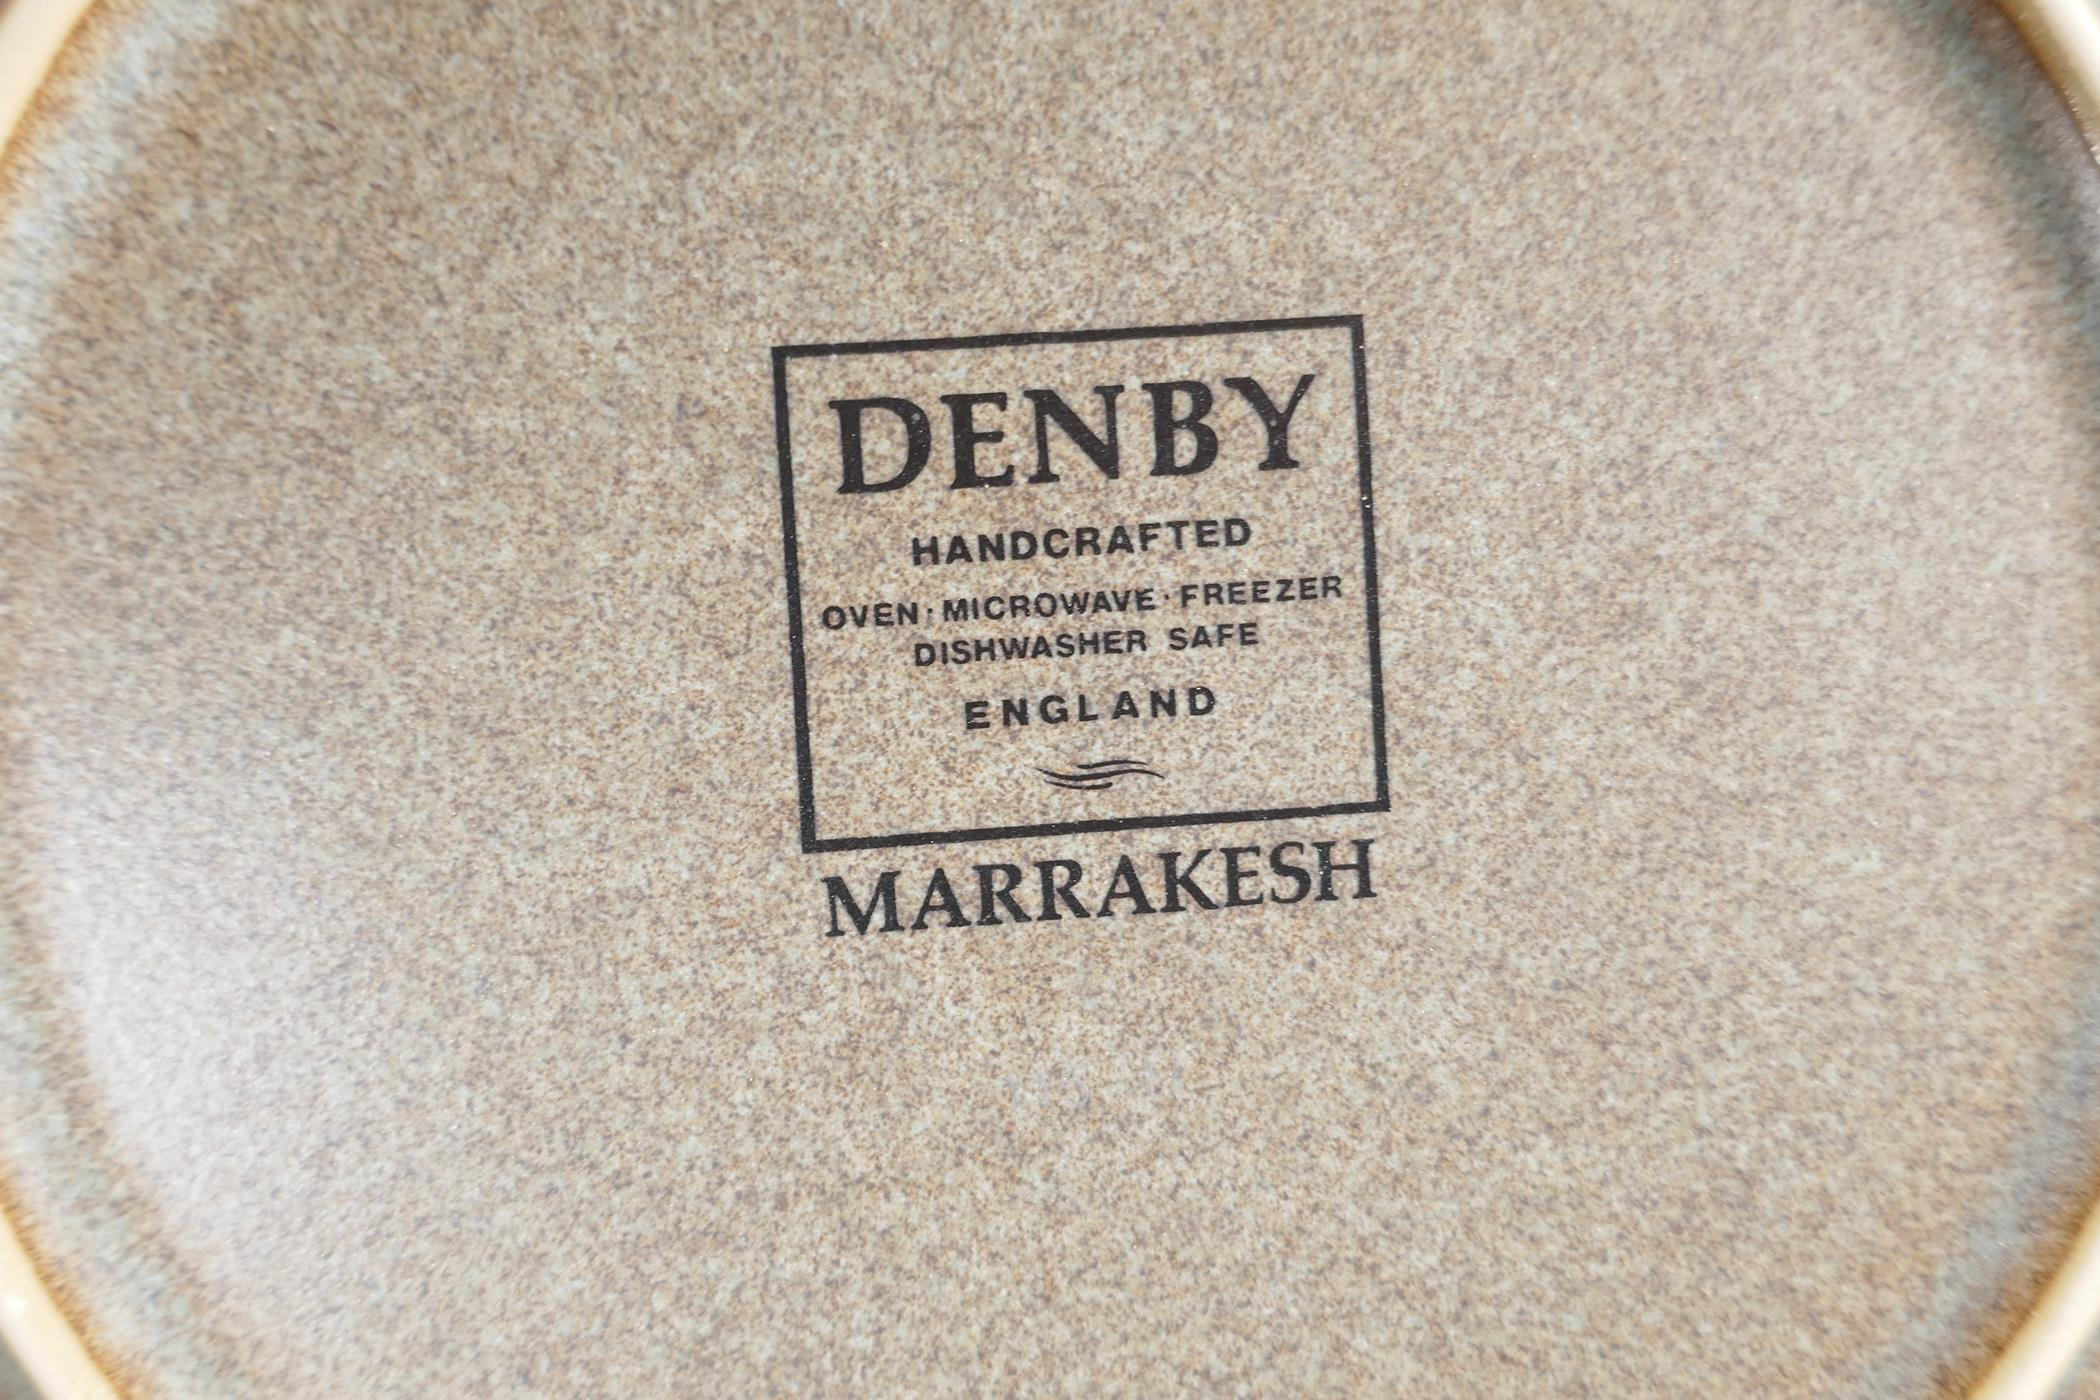 A Denby 'Marrakesh' six setting dinner service, with a pair of condiments, gravy jug, vegetable - Image 6 of 6